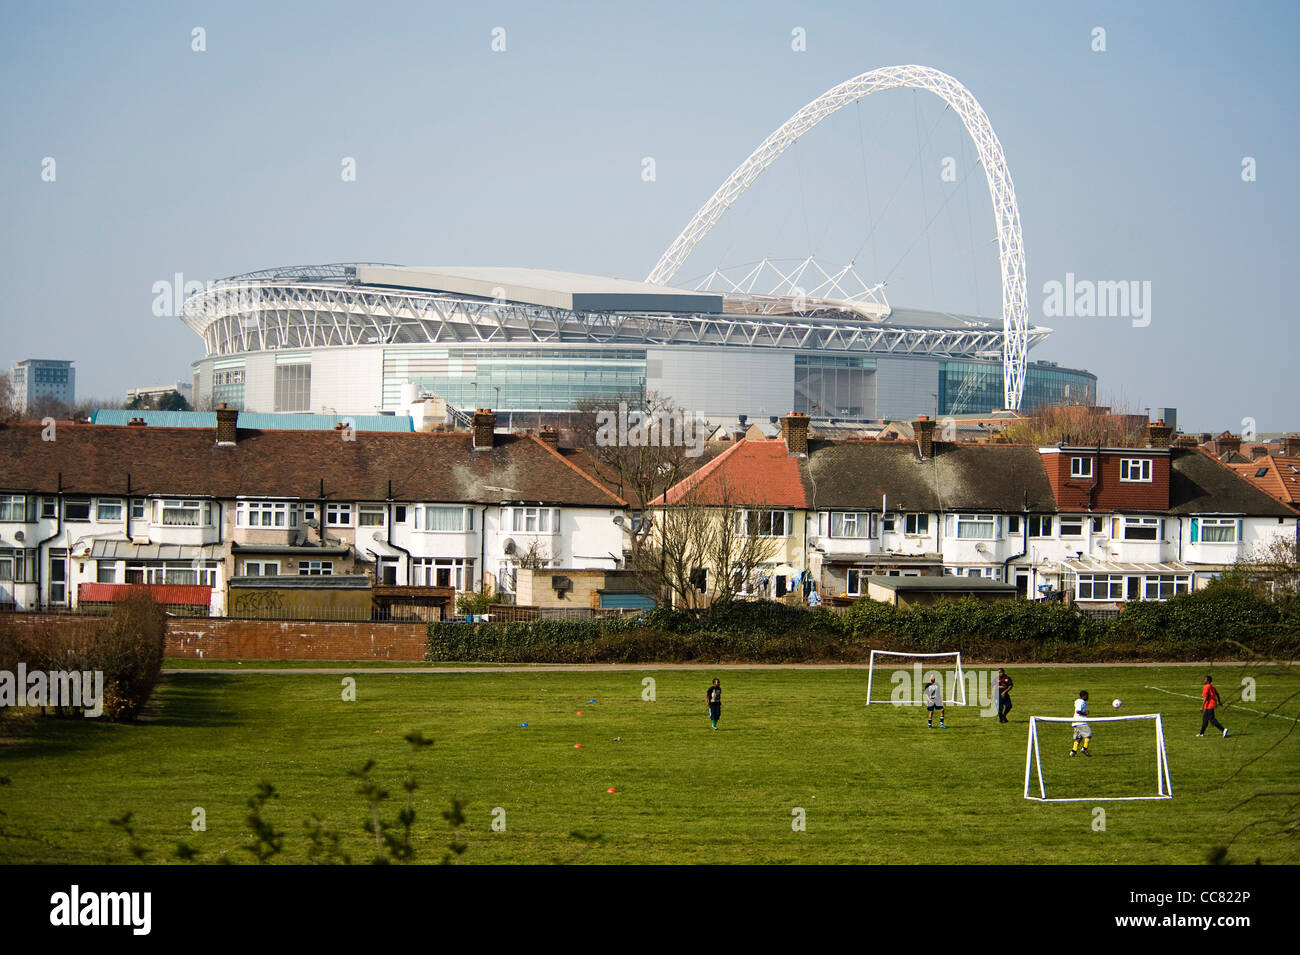 Wembley stadium seen from Brent River Park in the London borough of Brent with boys playing football in front and - Stock Image